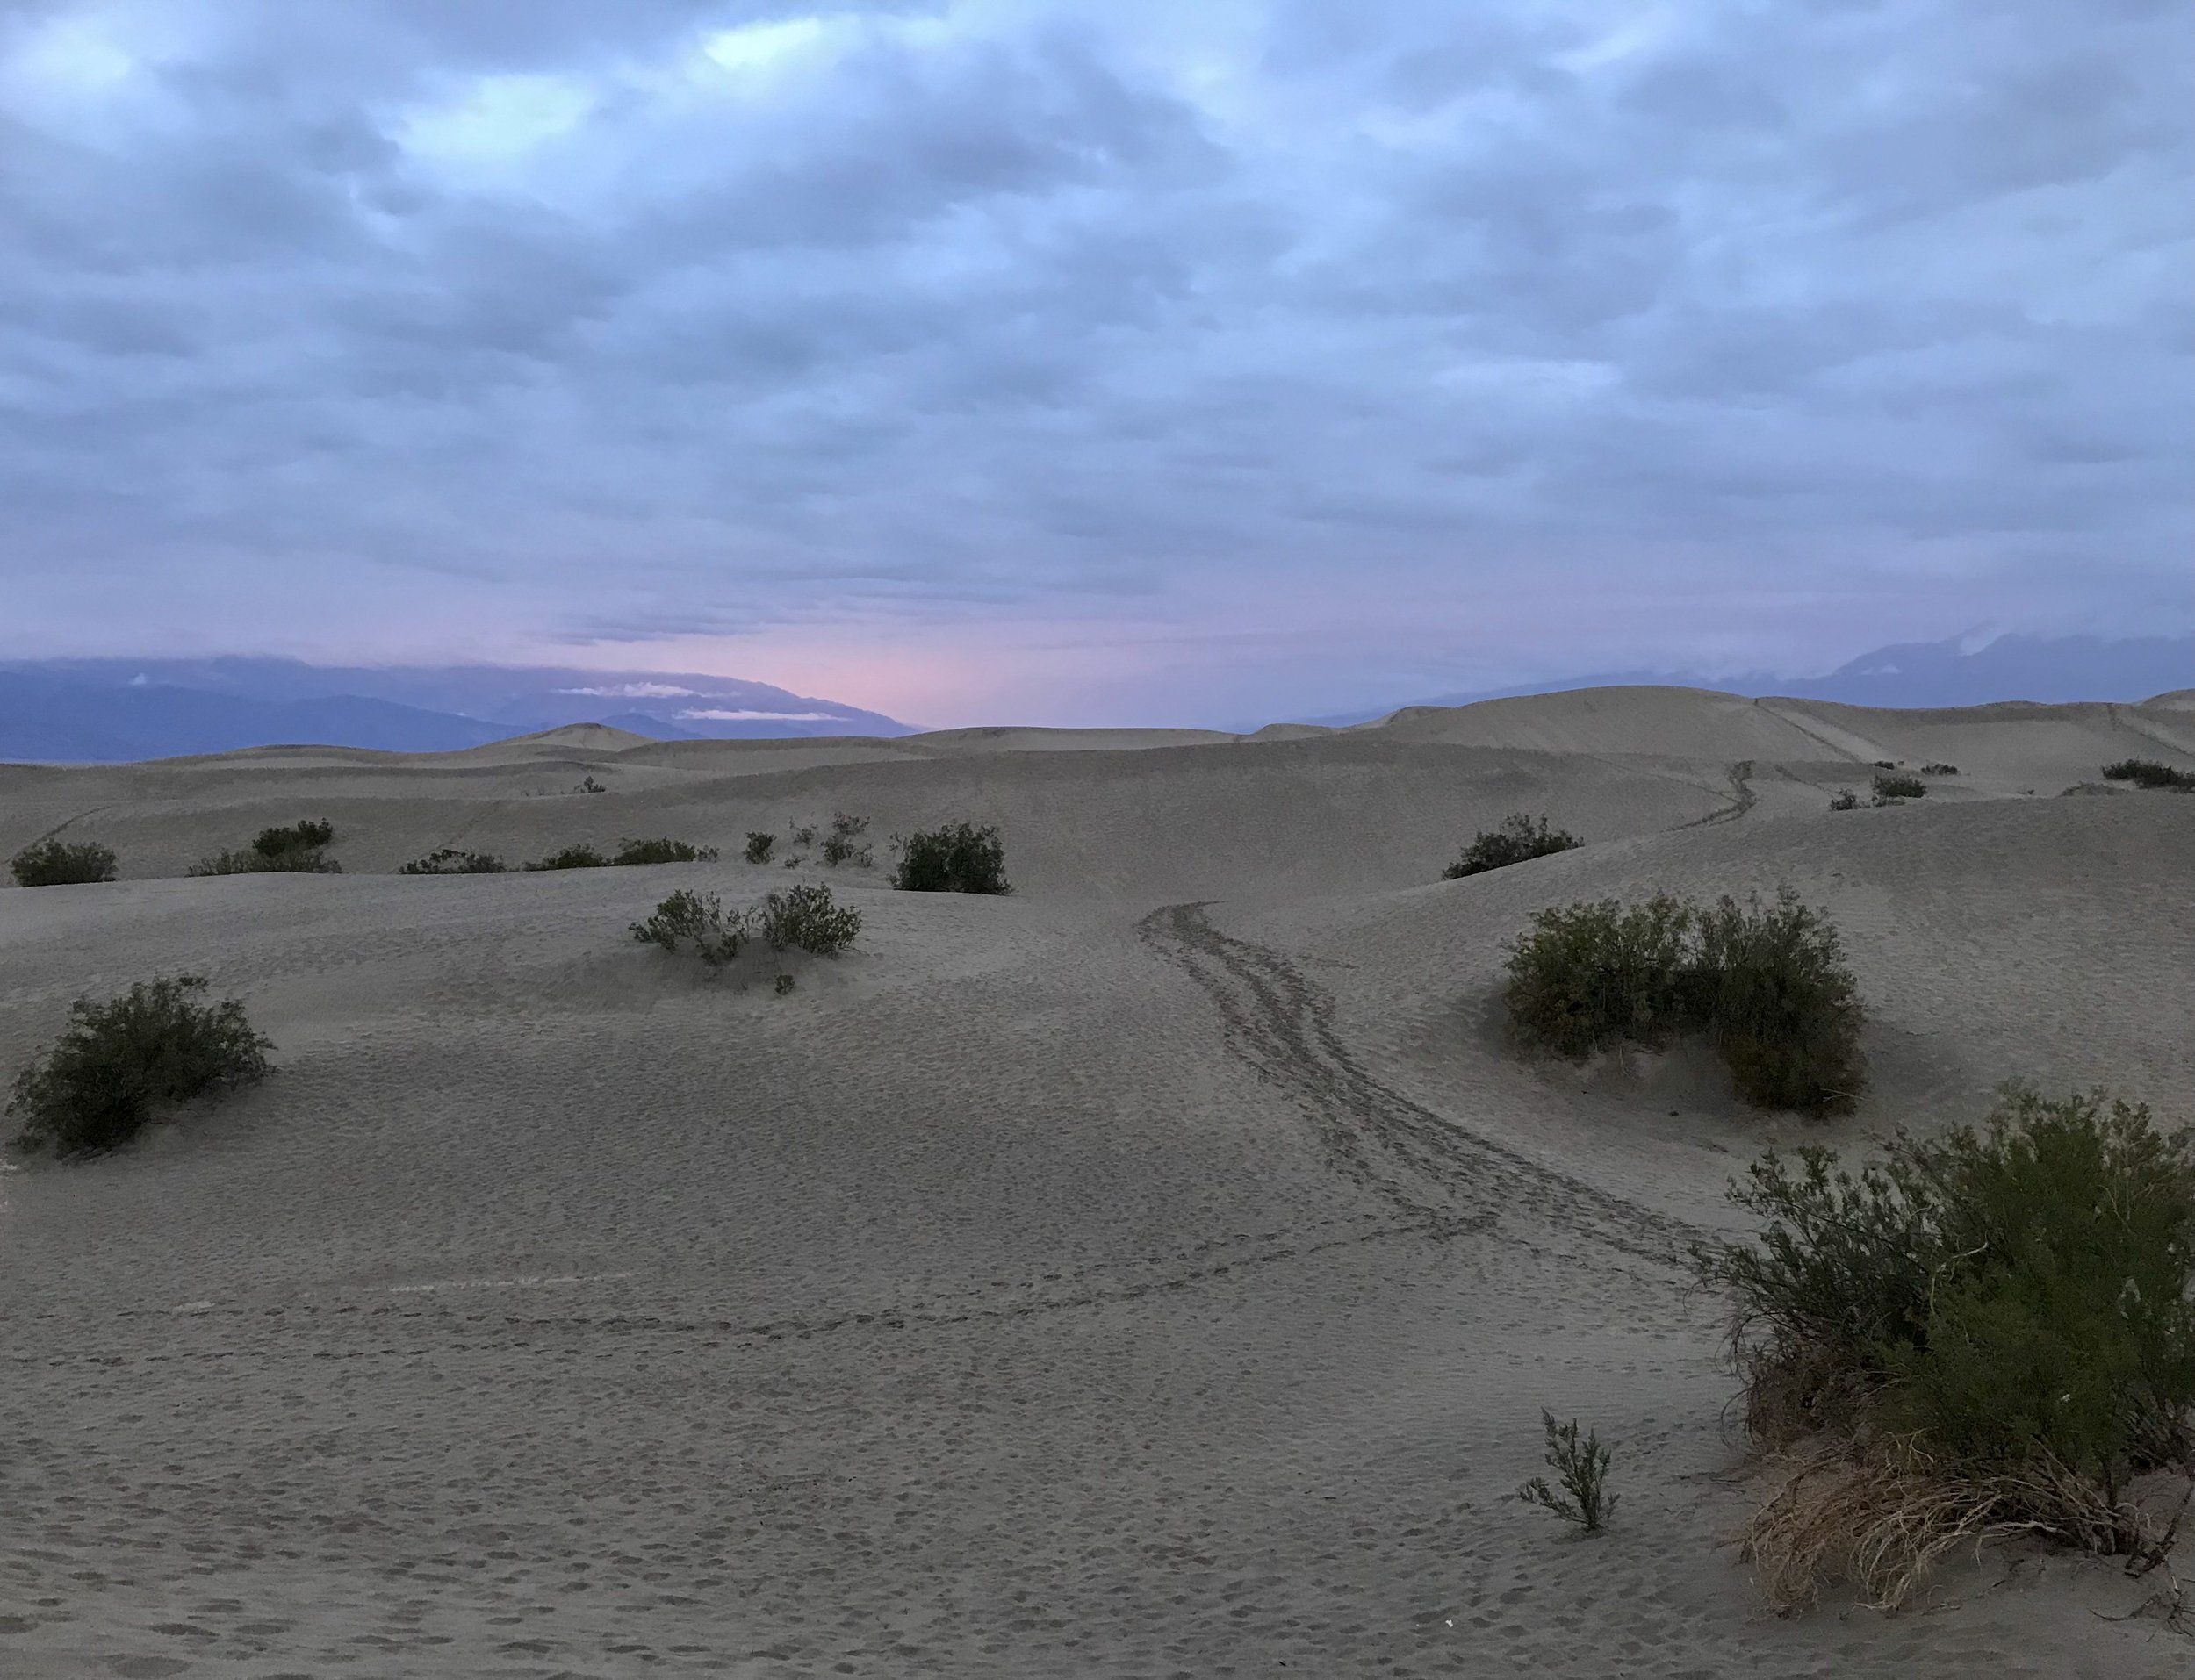 Sunset glow over the Mesquite Flat Sand Dunes in Winter. Death Valley, CA.  Photo By: Nichole McDaniel